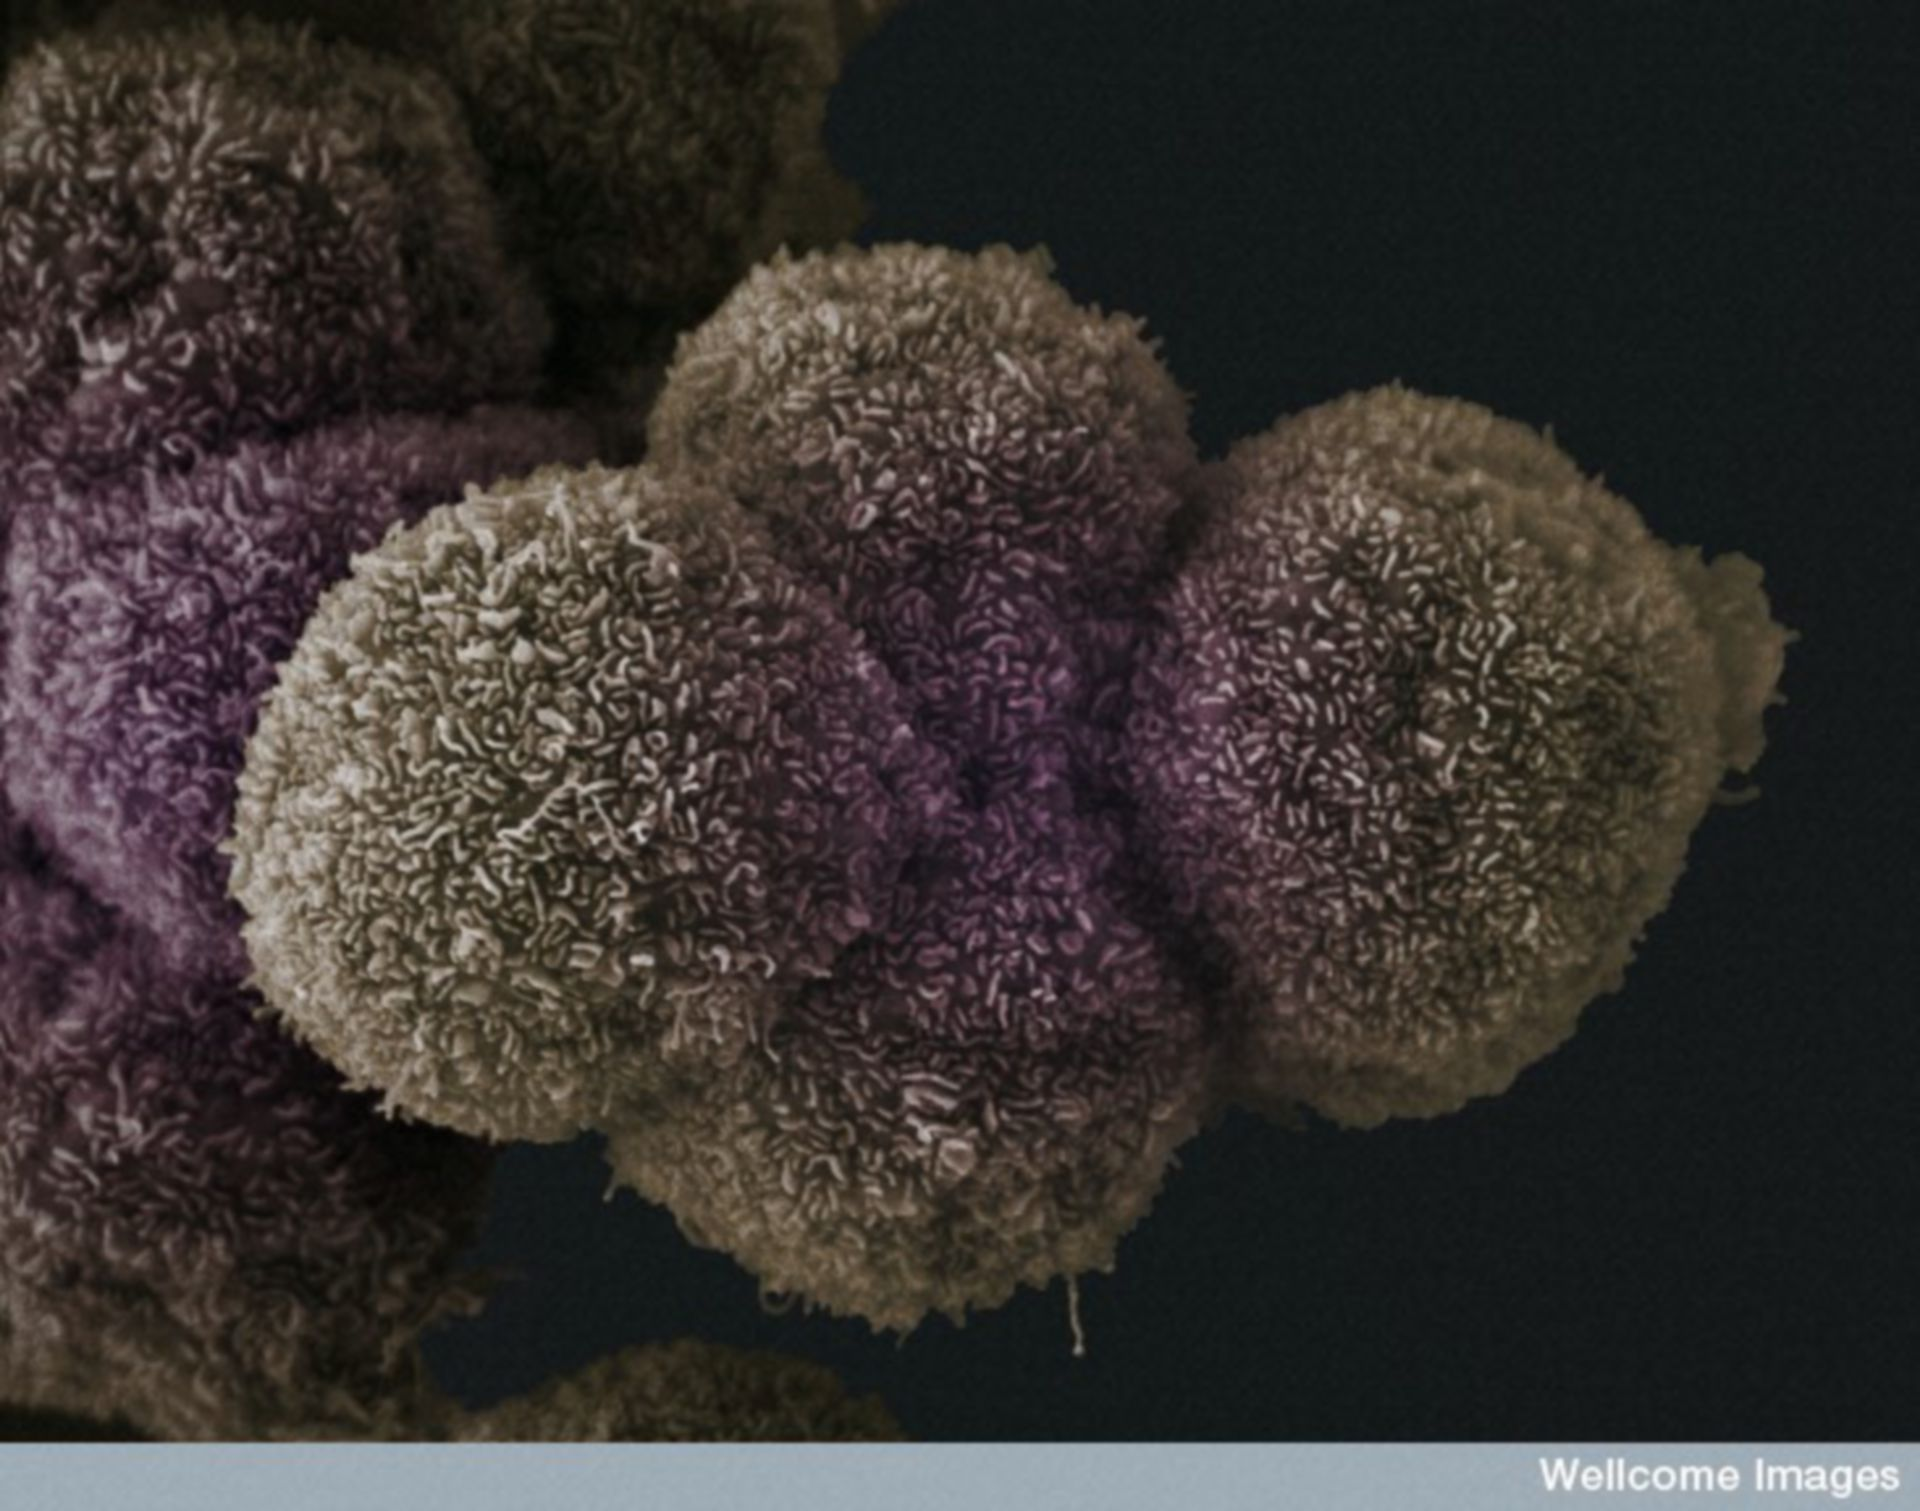 Cancer! Image of the Week - April 6, 2015 - CIL:39104